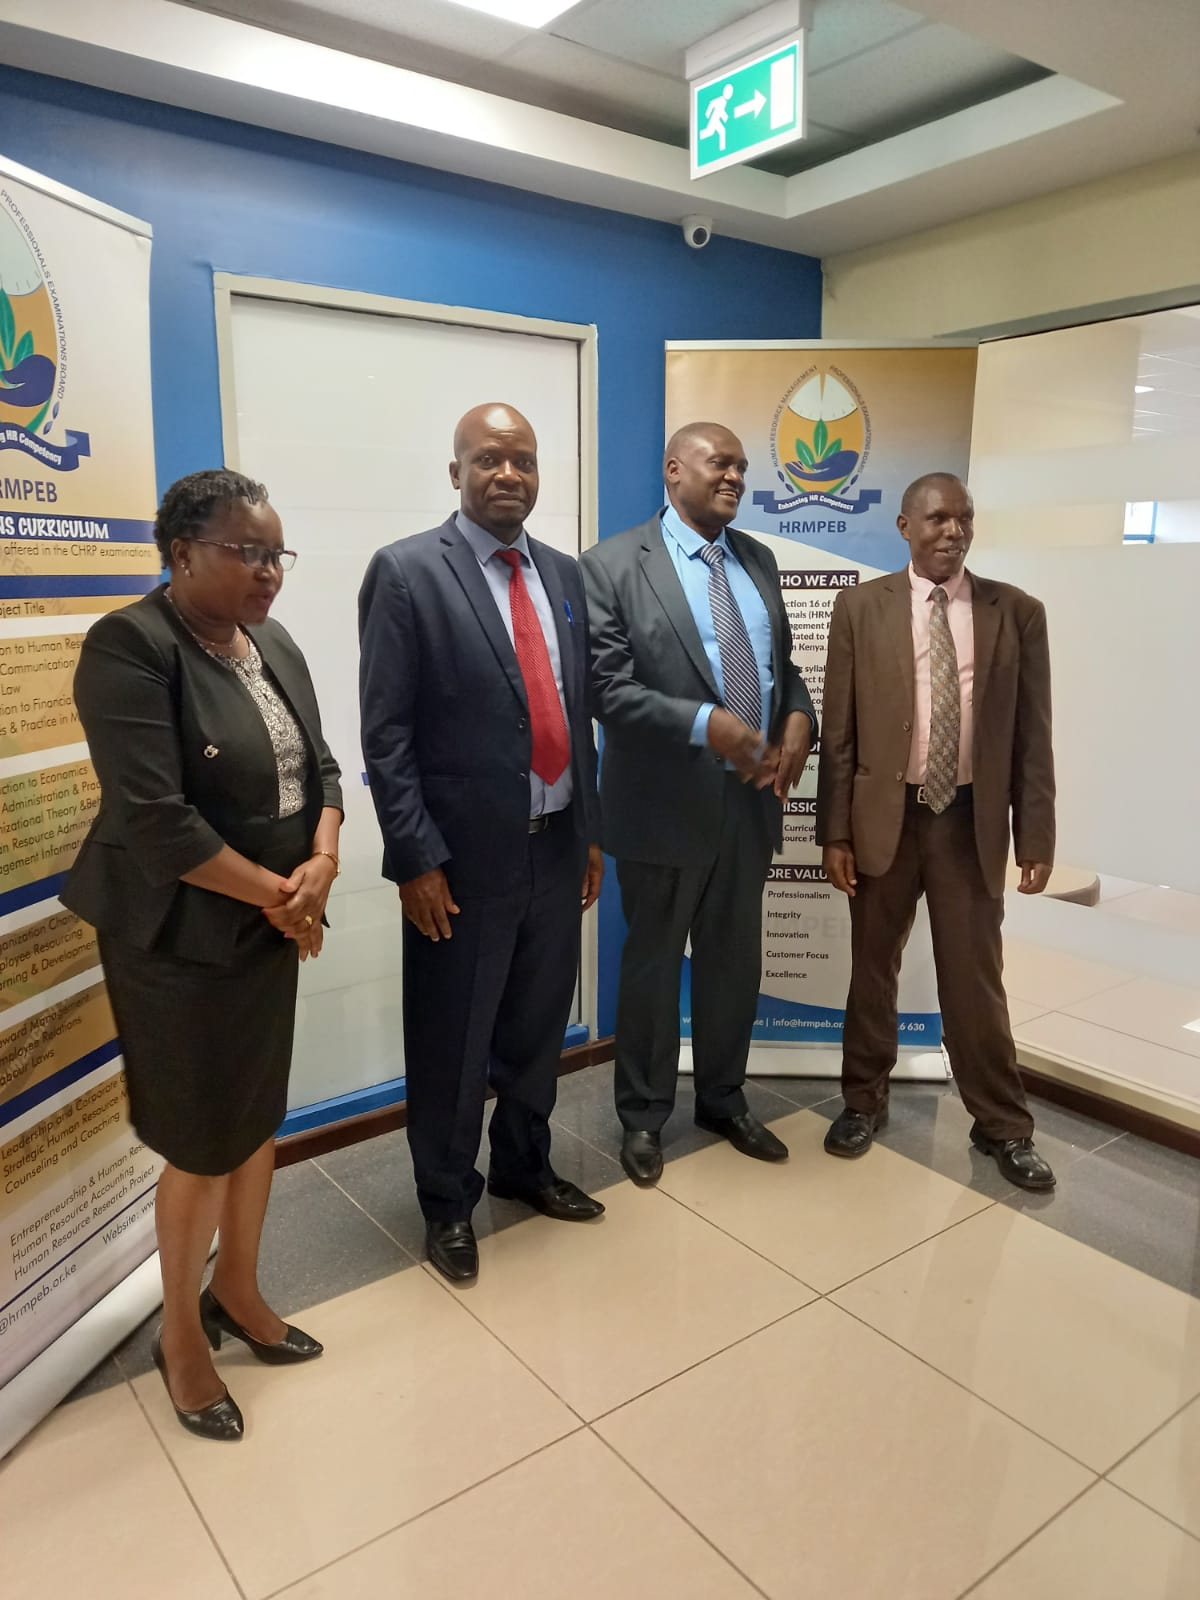 KNQA Director Technical Services S. Maindi(2nd L) & HOD Registration, Accreditation & Documentation J.Tegeret(R) with HRMPEB CEO Dr.Douglas Ogolla(2nd R) & Manager Examinations Jane Wanyoike(L) during the opening of a joined meeting on Accreditation of HRMPEB as a QAI and her qualifications